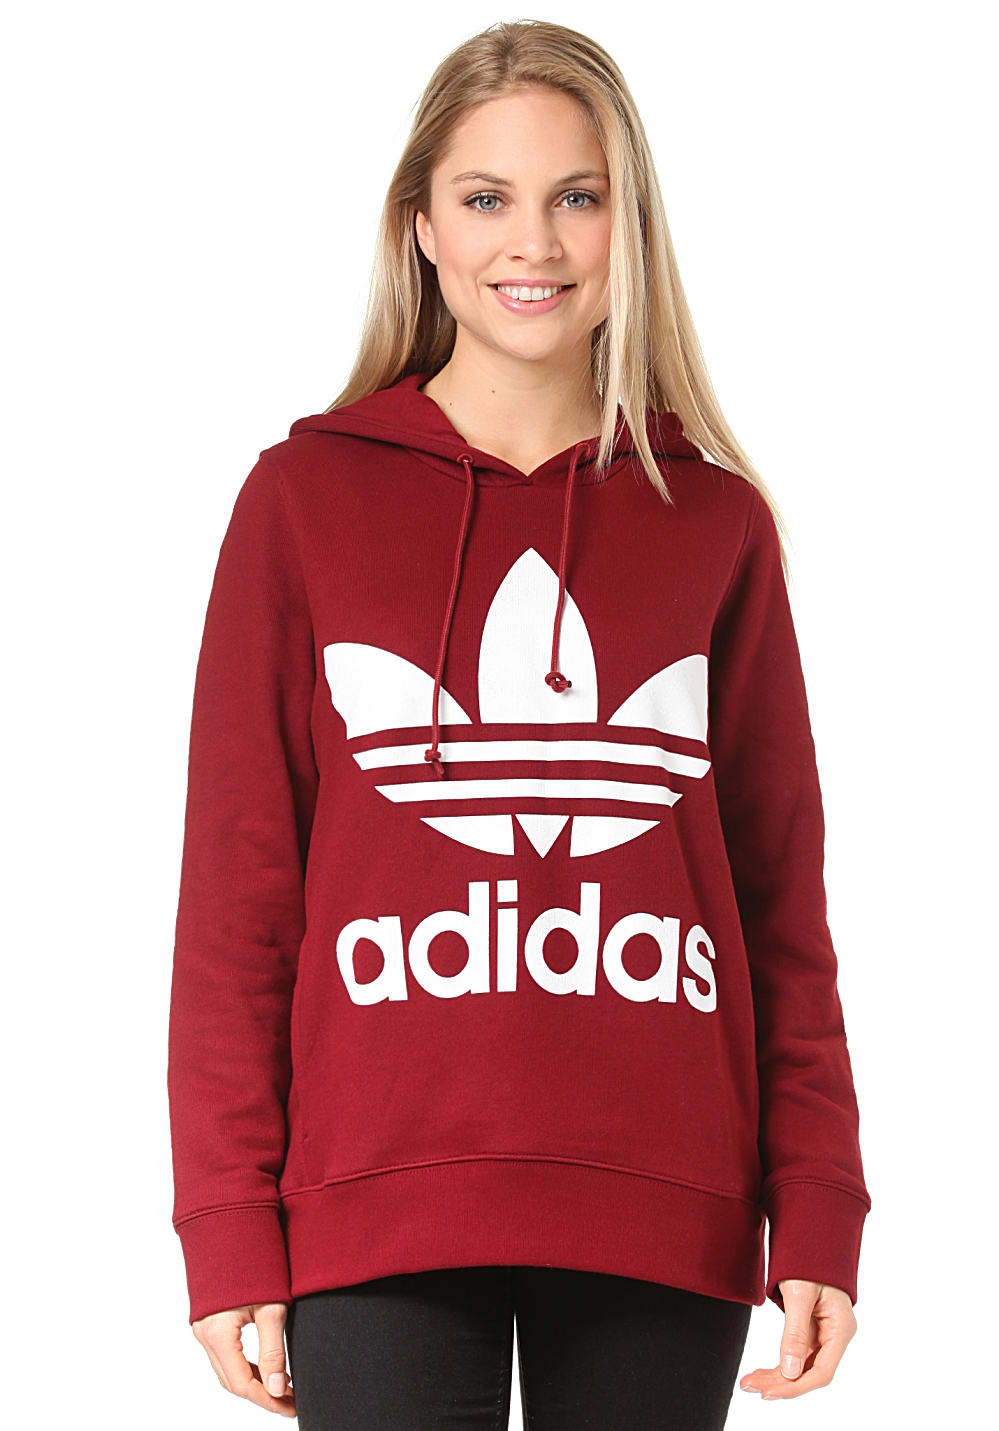 adidas hoodie rood Sale. Up to 62% Off. Free Shipping & Returns